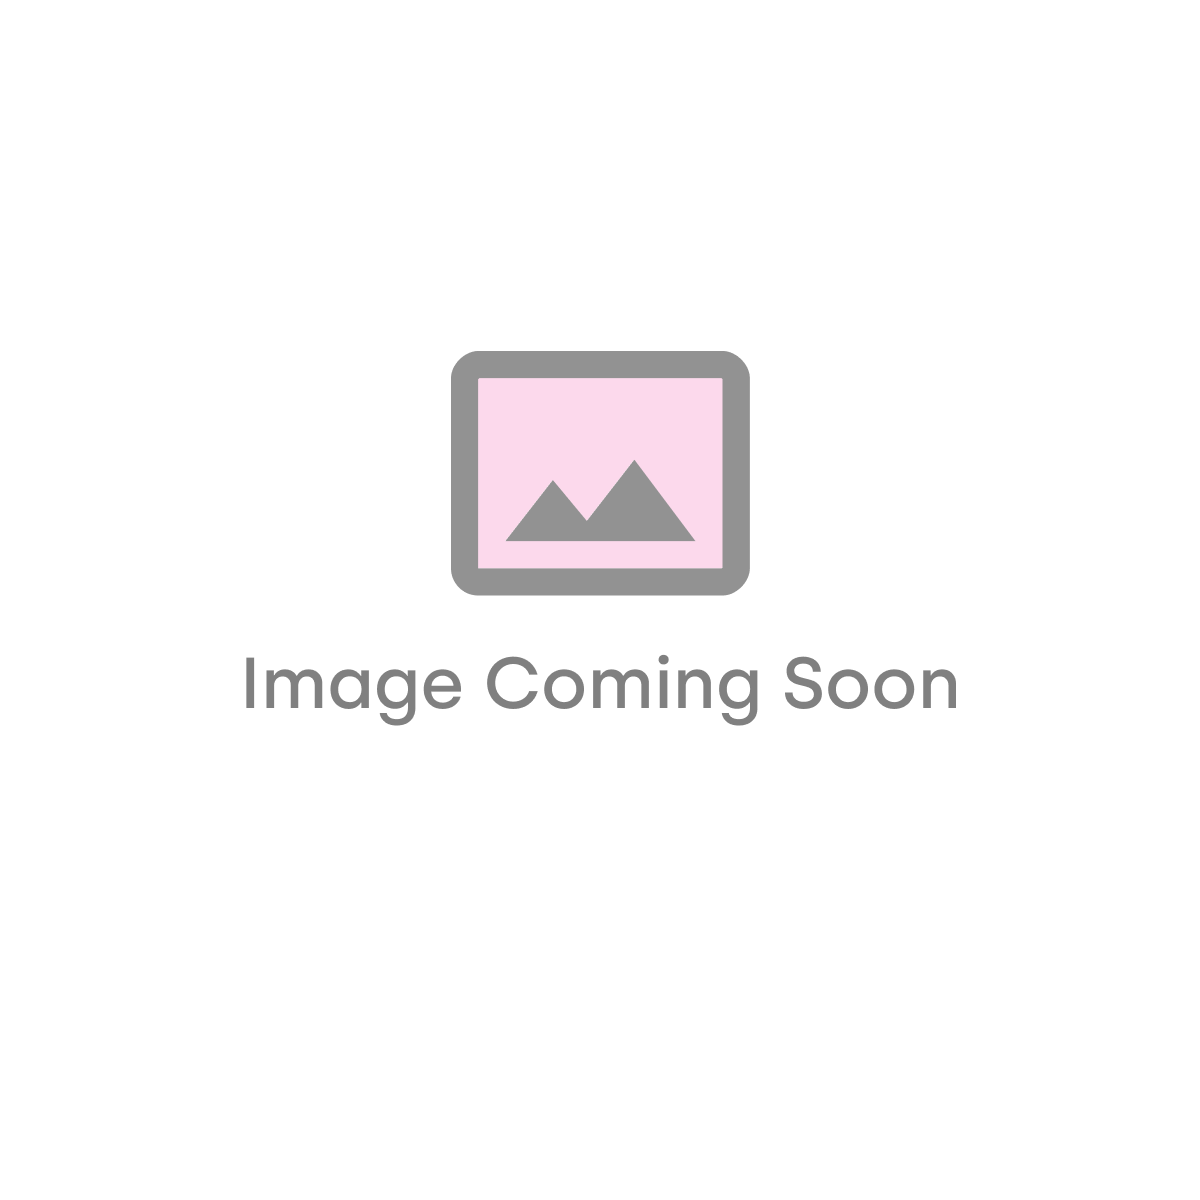 Aquadart 10 900mm Wetroom Panel - Smoked Glass (18680)